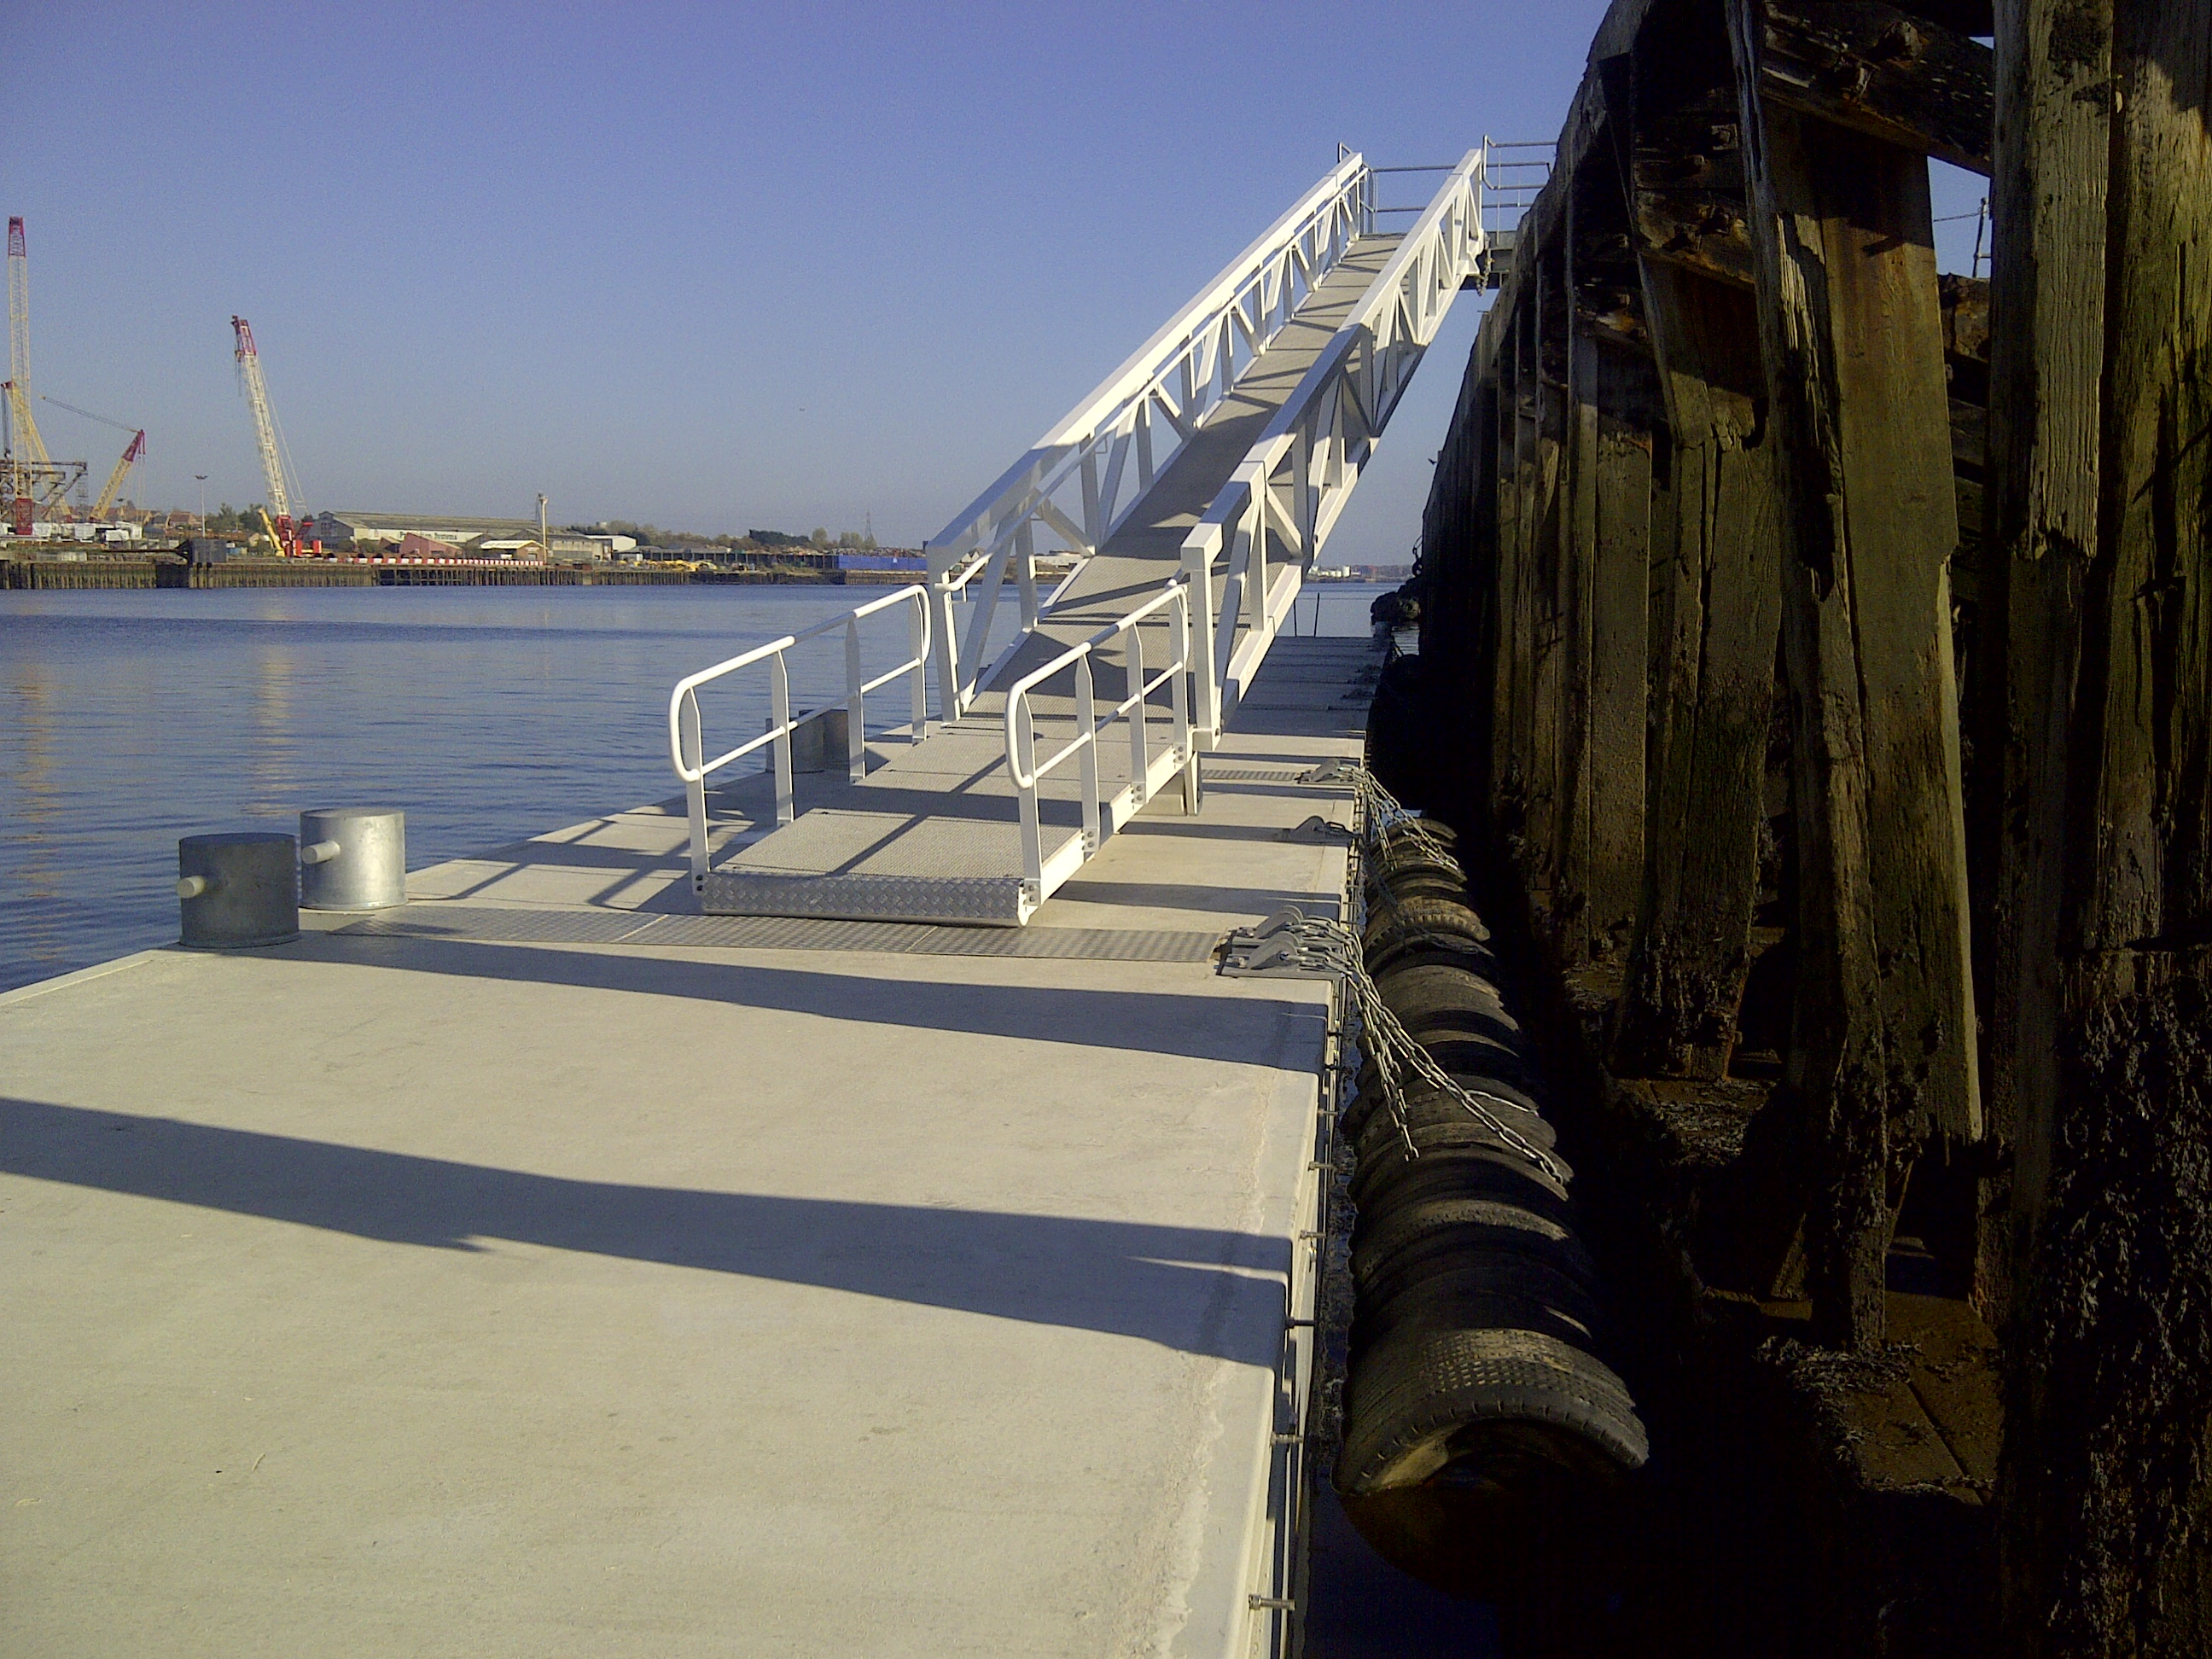 Tug berth pontoon, River Tyne